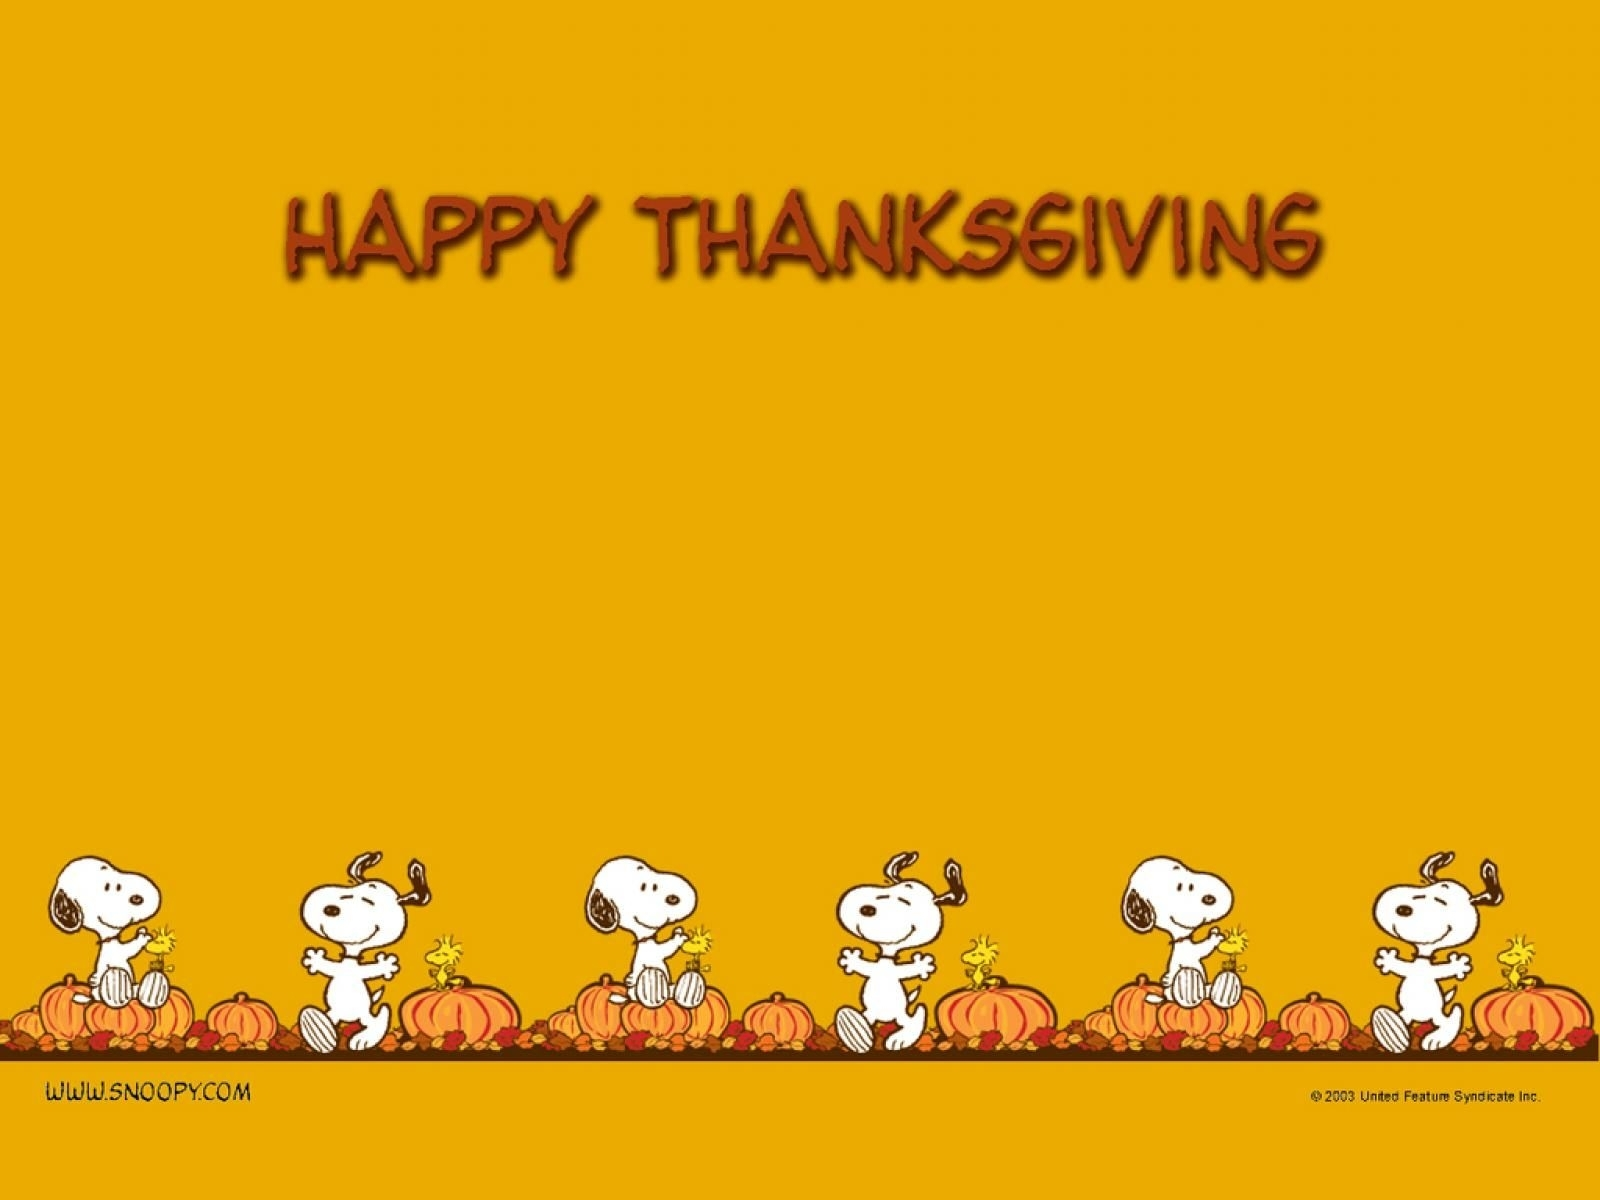 charlie brown thanksgiving wallpapers | thanksgiving day | pinterest